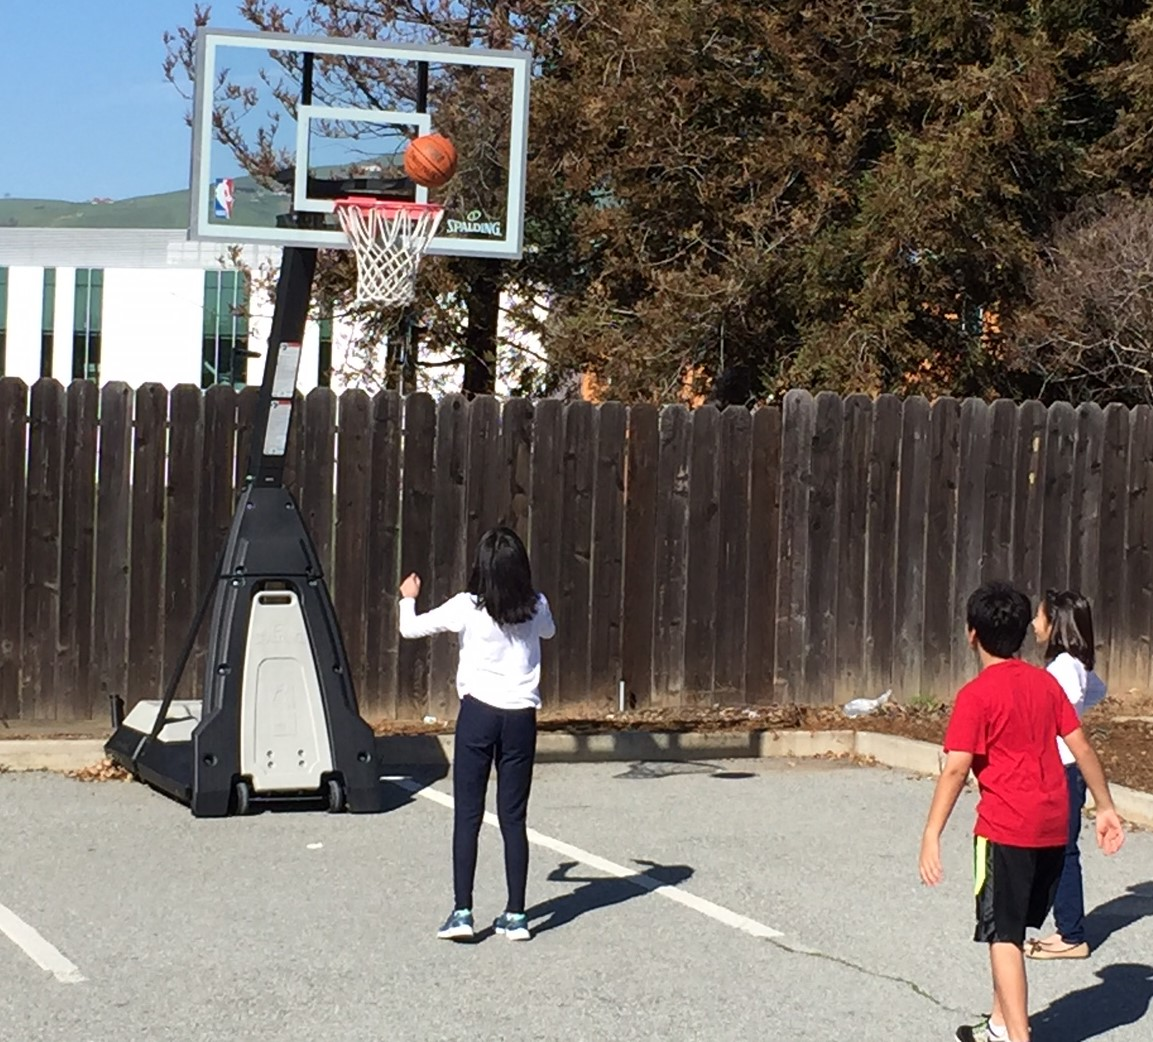 Basketball & other sports/activities